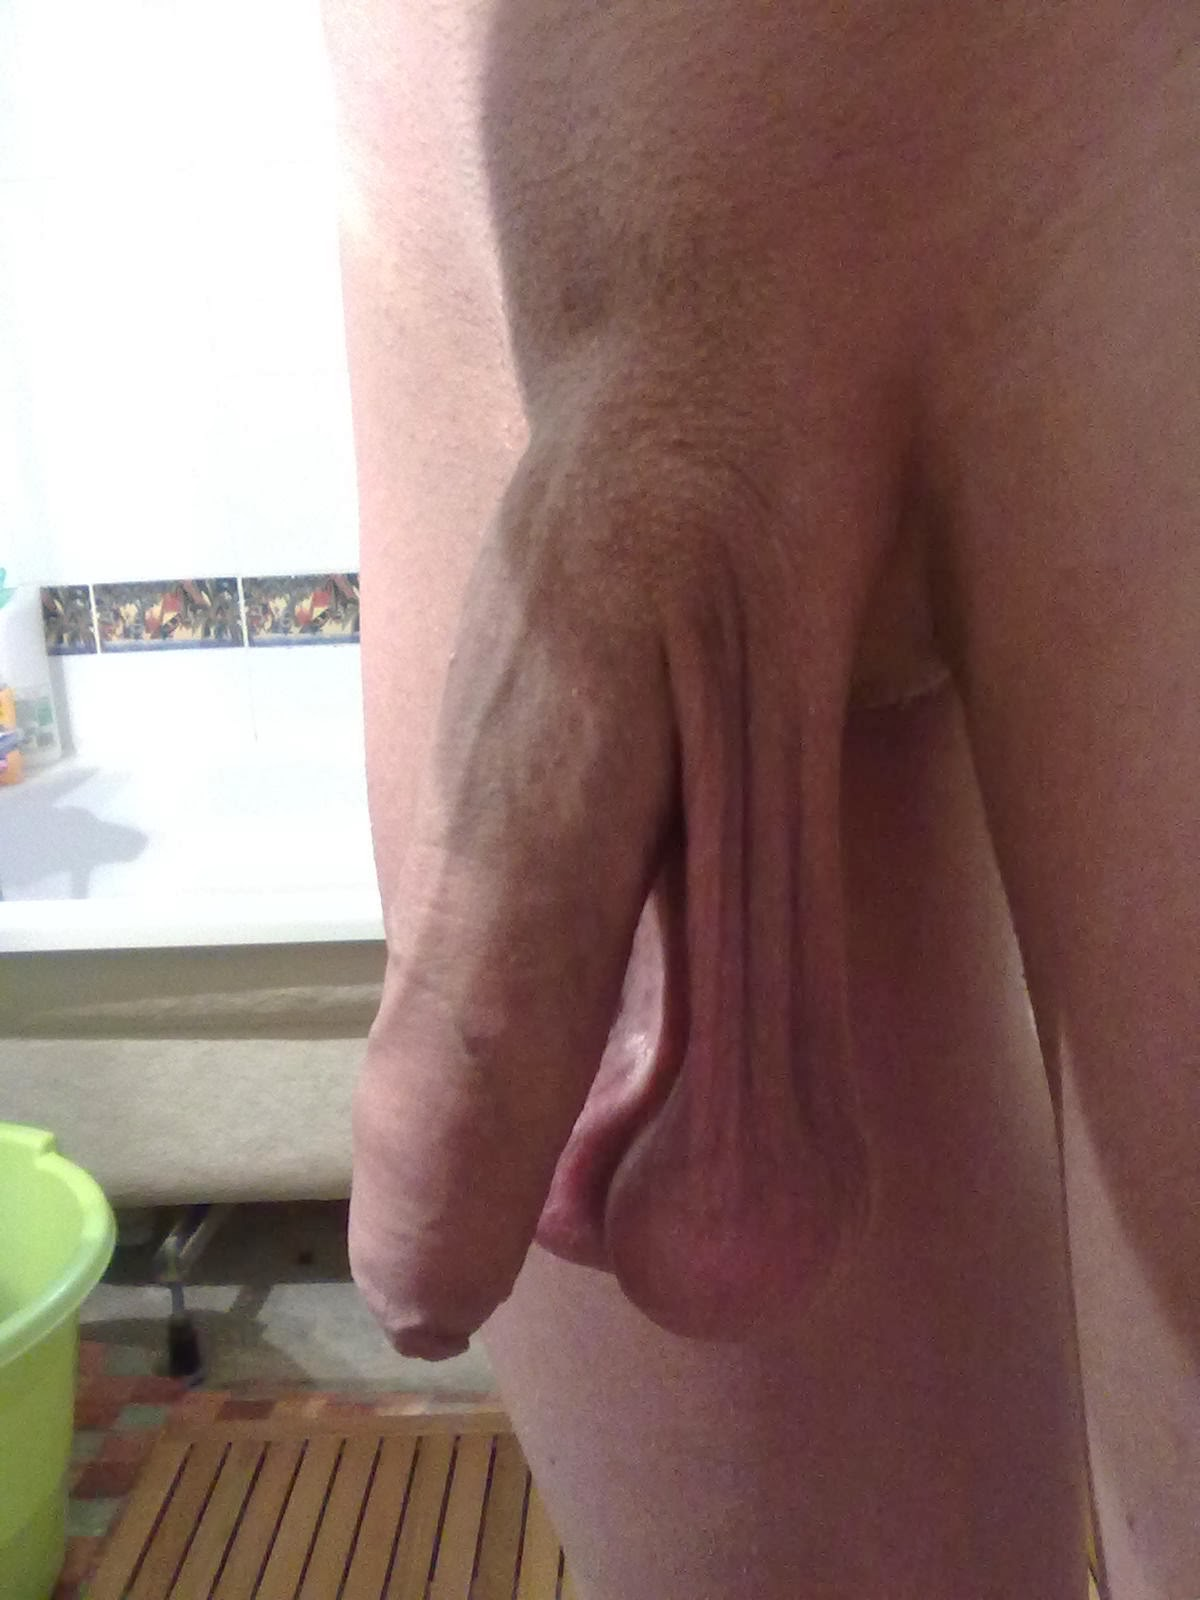 Ball cock hanging low